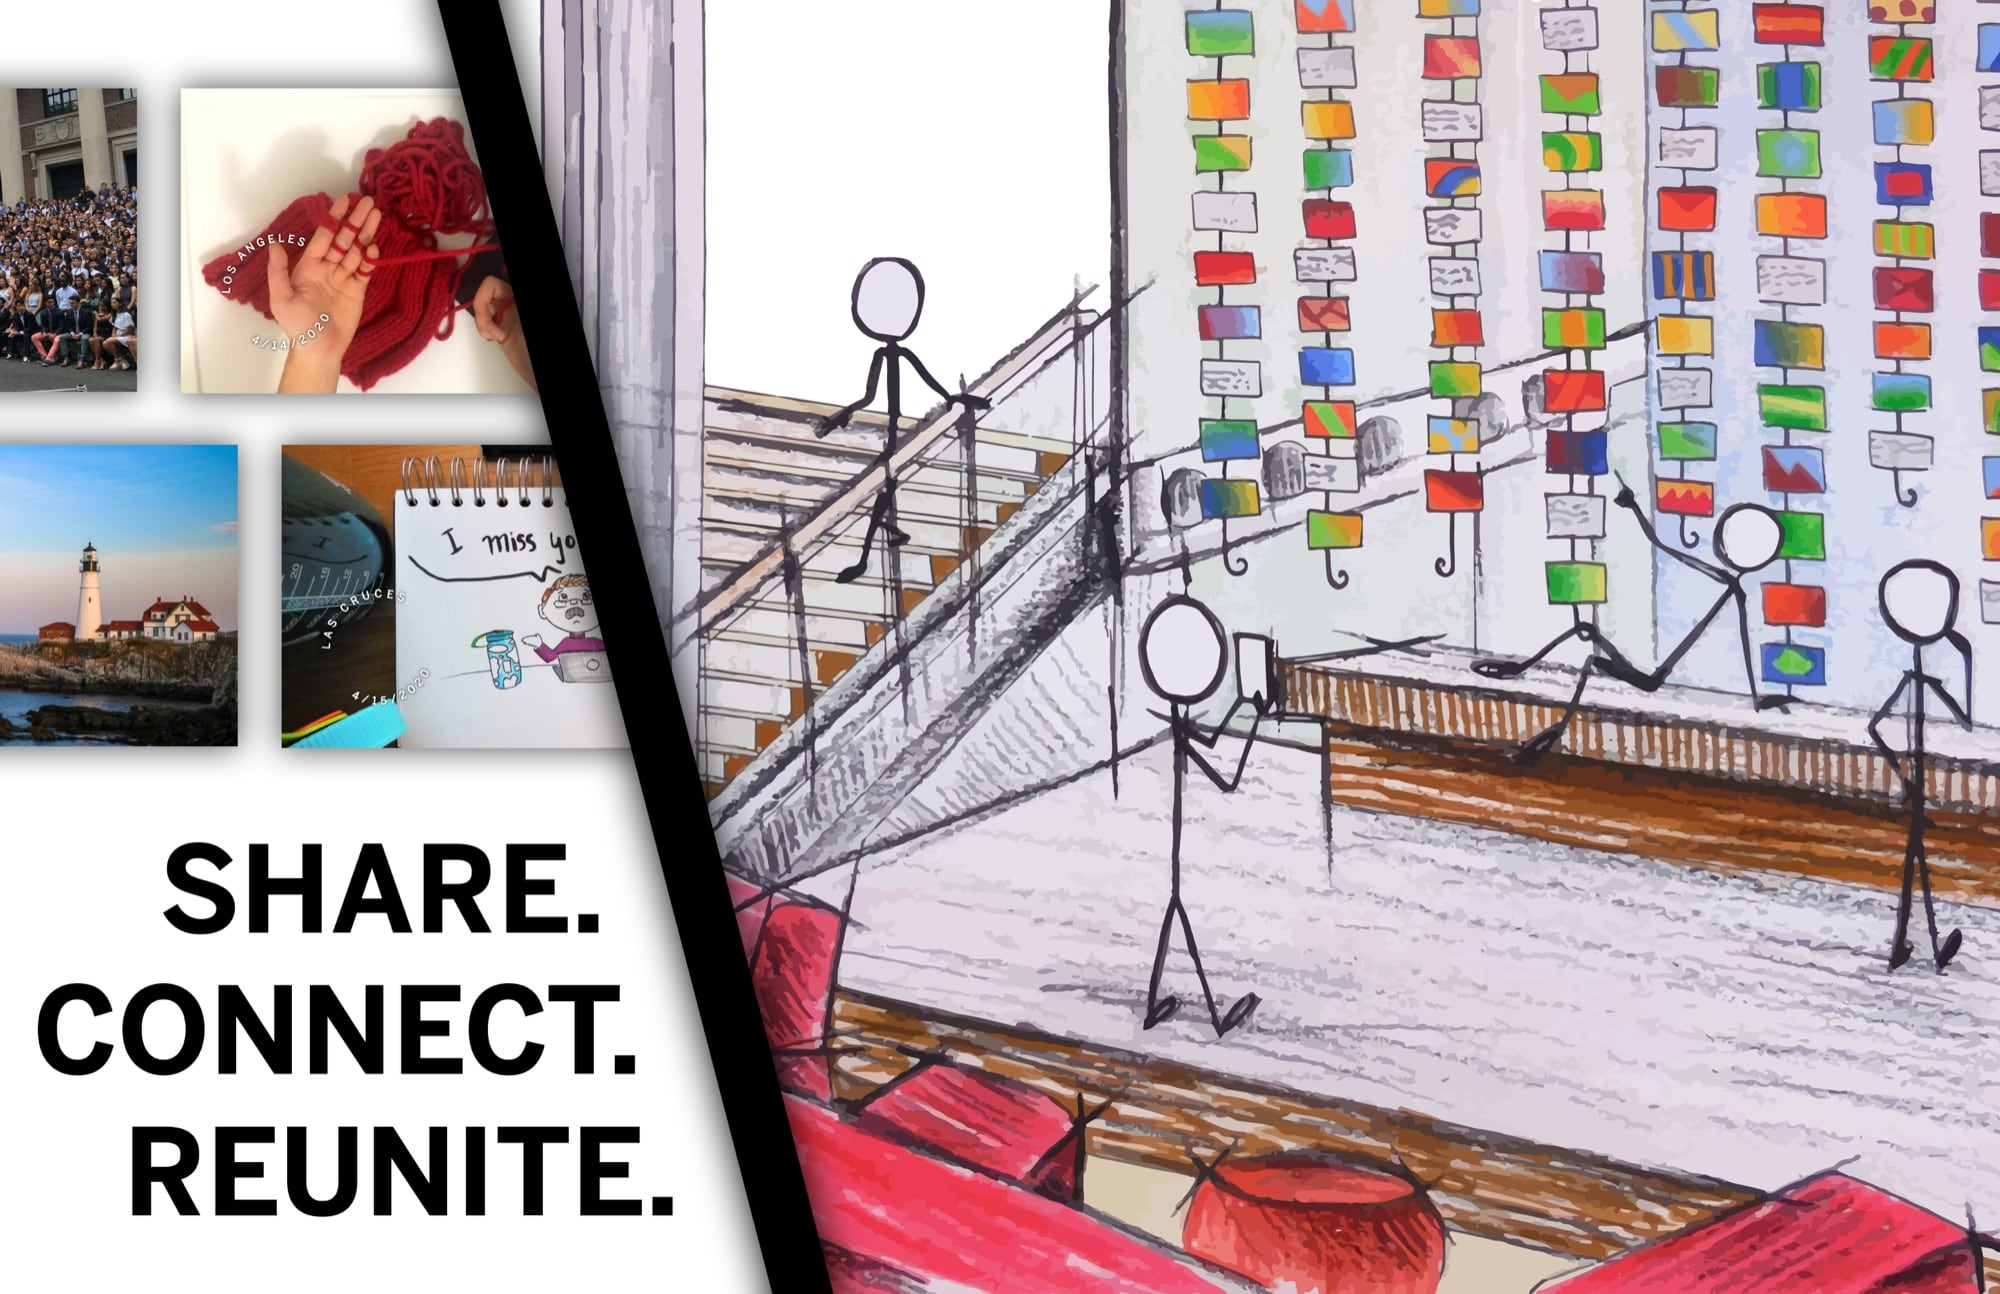 Drawing of postcard exhibit, virtual postcards, and words Share. Connect. Reunite.